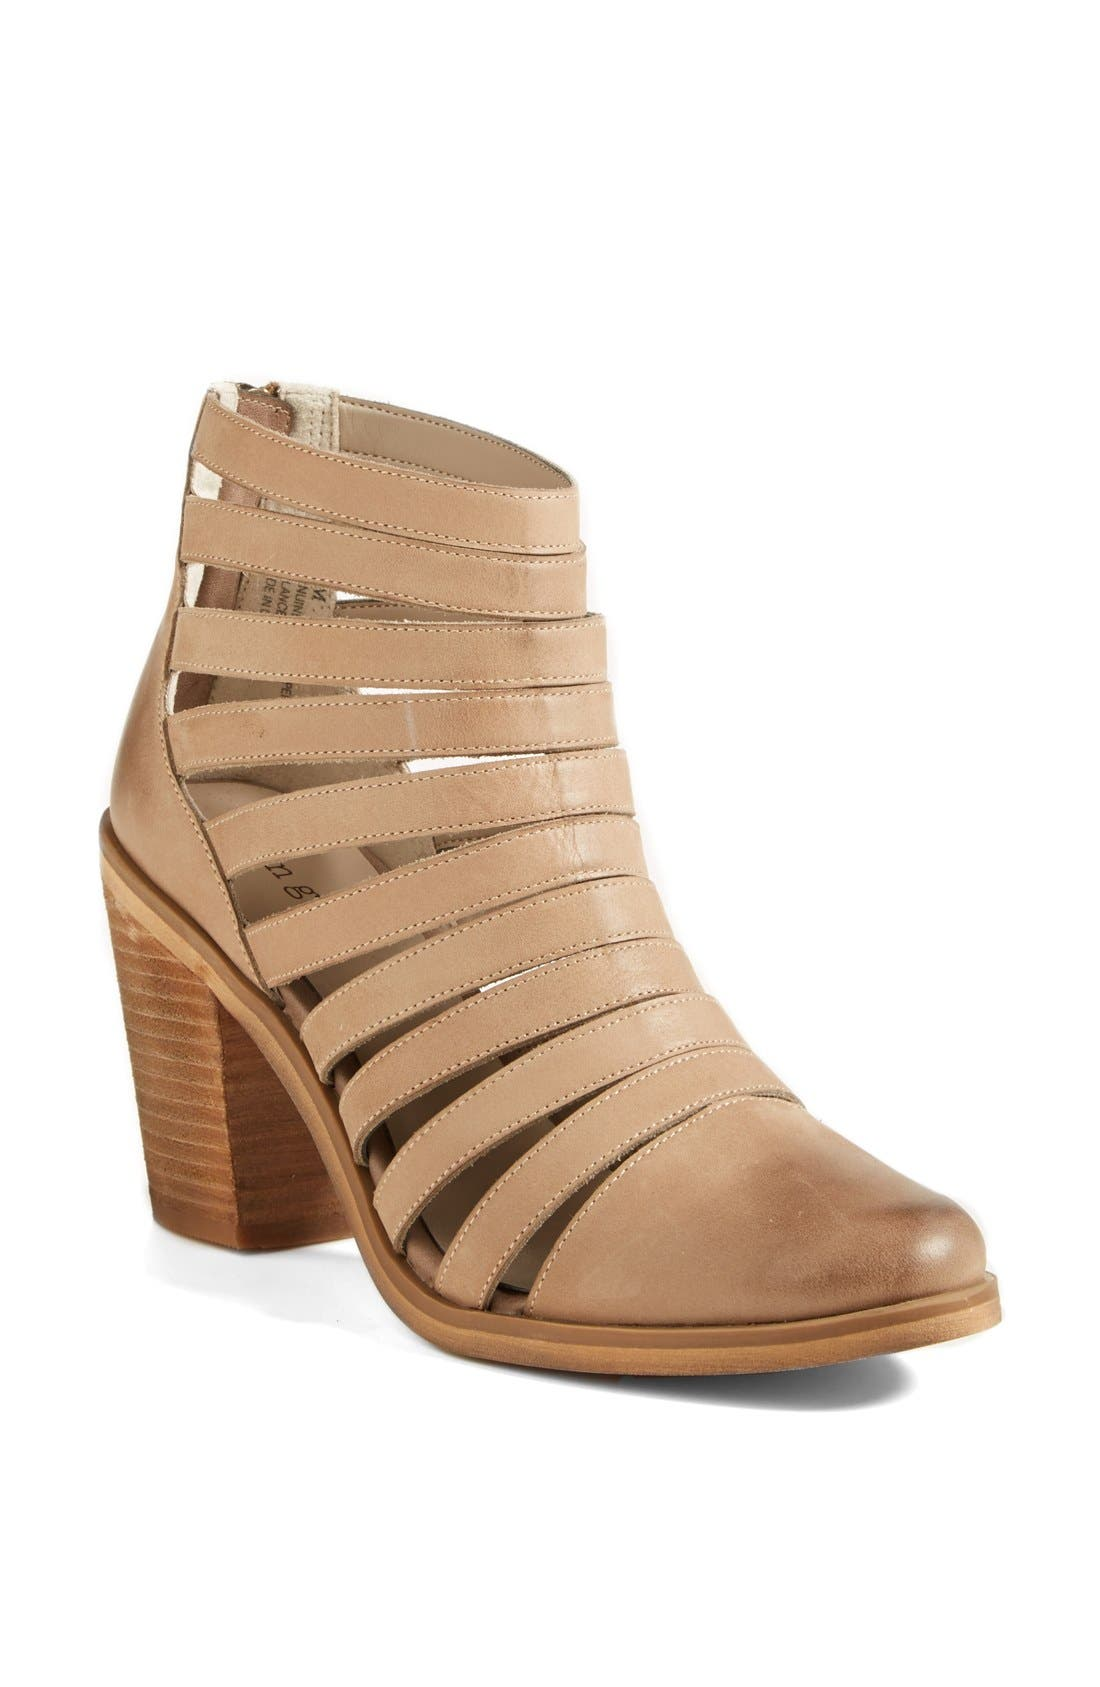 Alternate Image 1 Selected - Hinge 'Dresden' Caged Leather Bootie (Women)